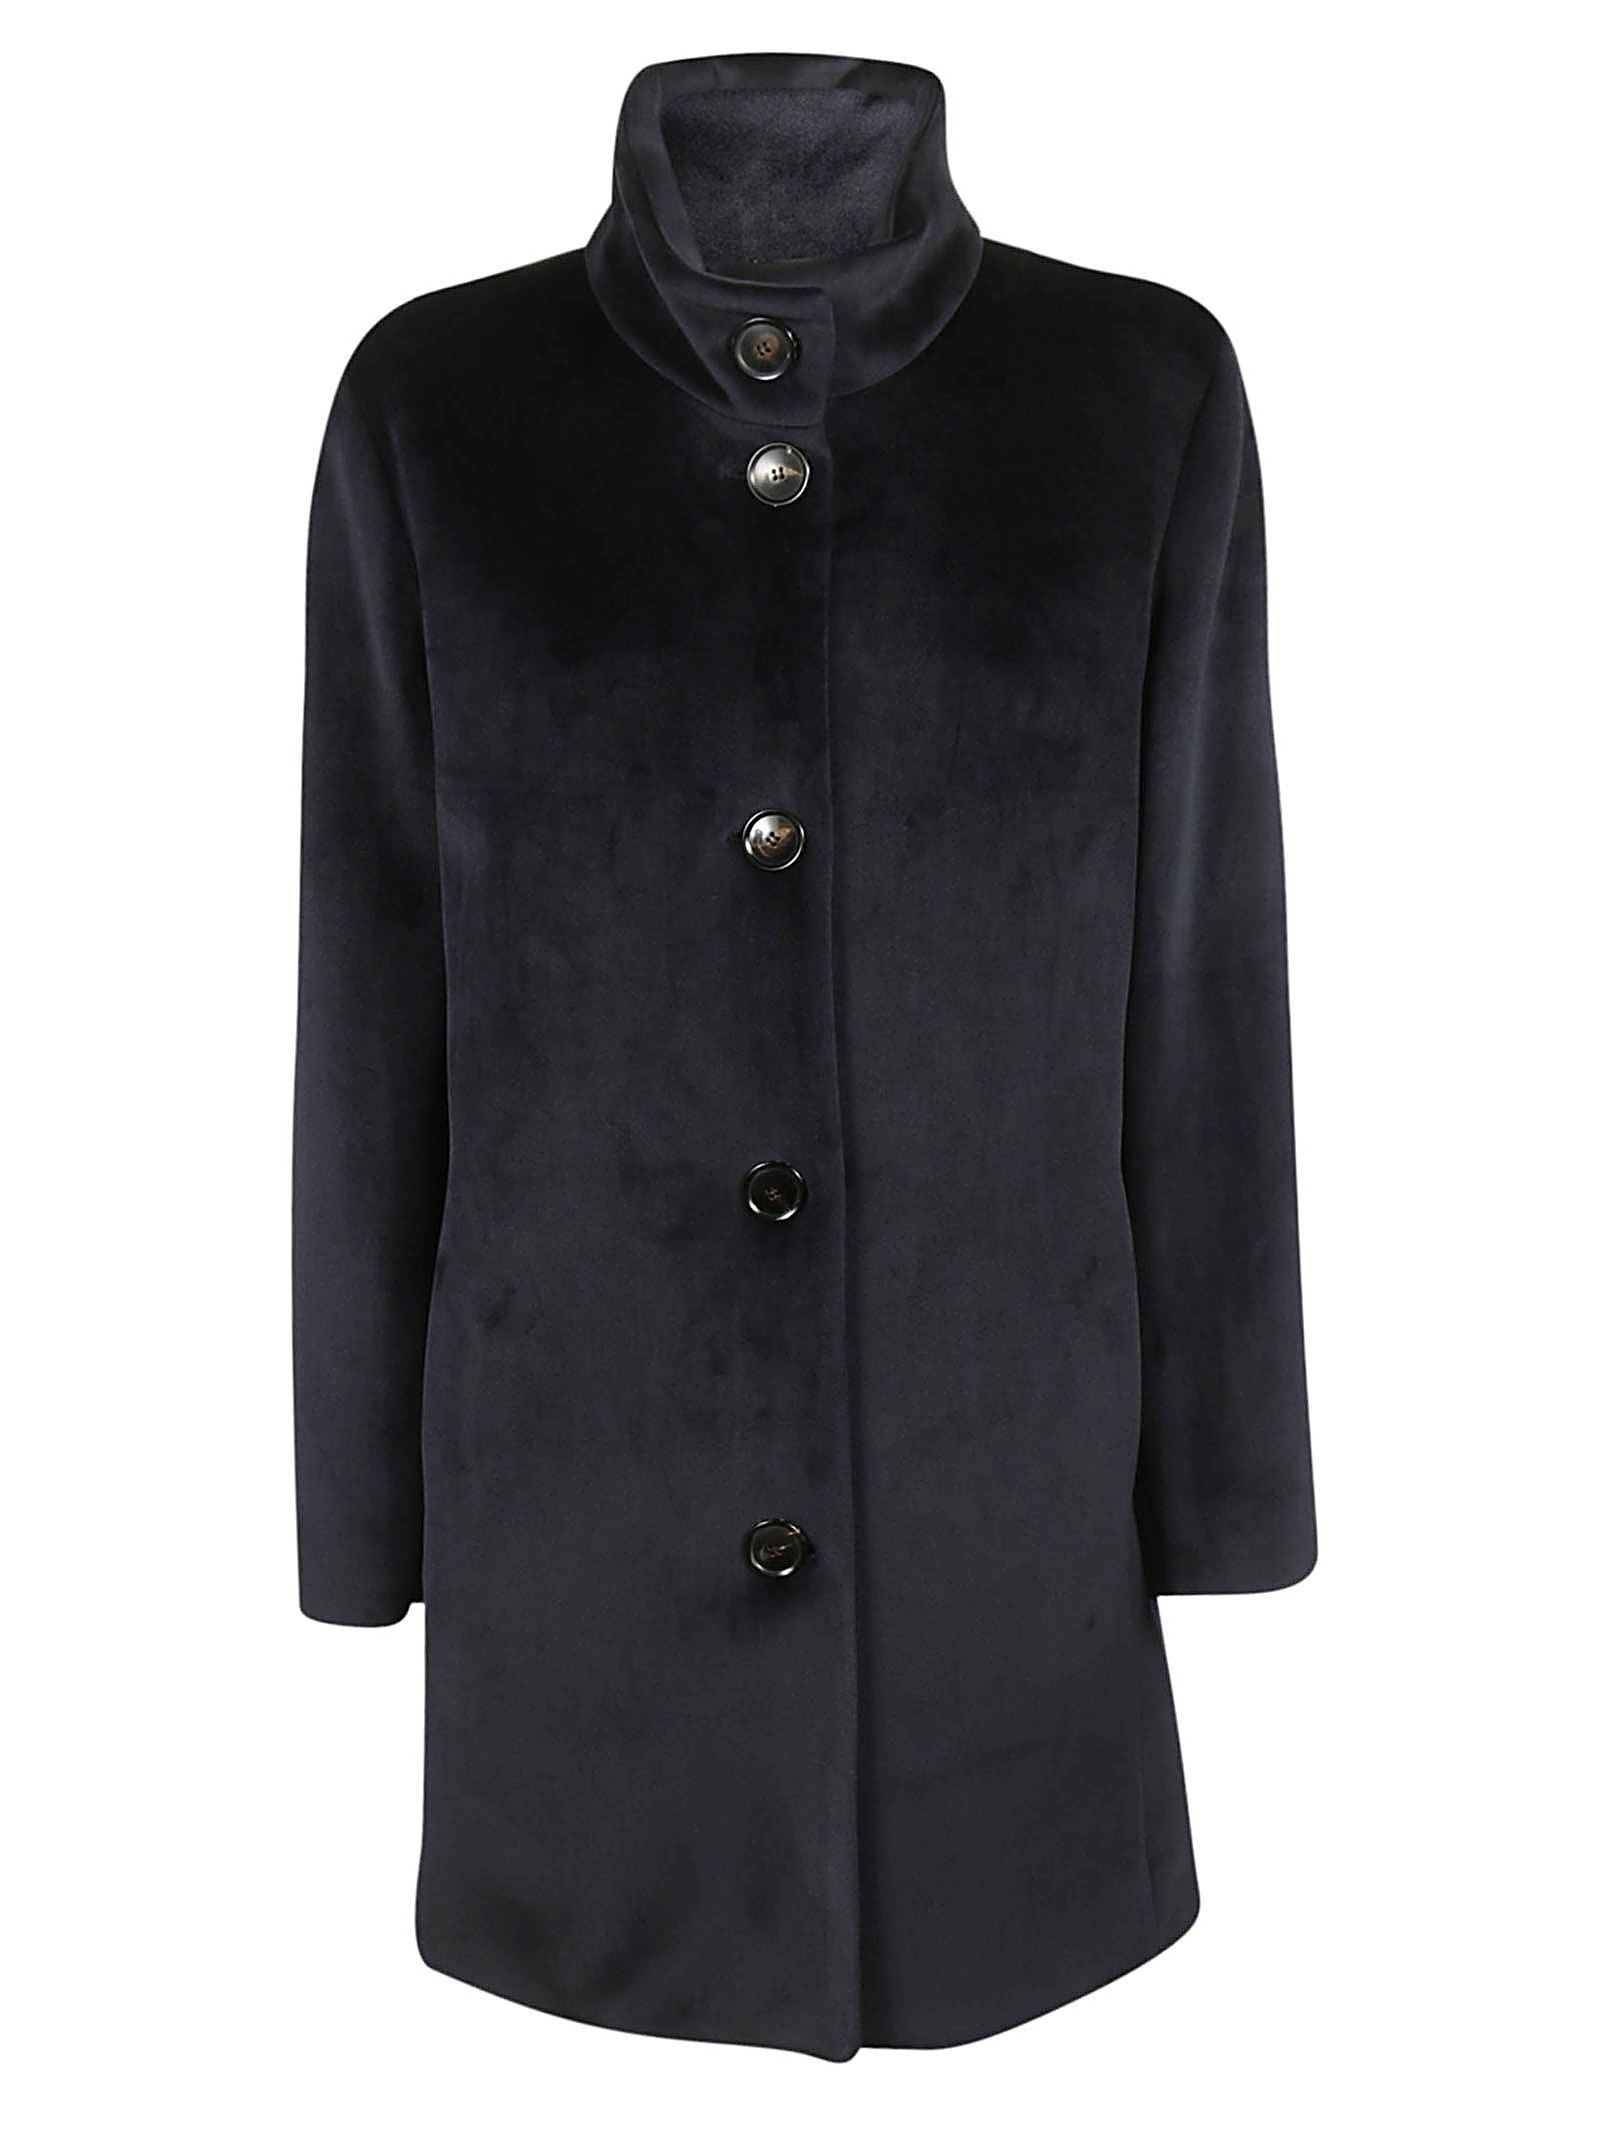 RRD - ROBERTO RICCI DESIGN Rrd - Roberto Ricci Design Buttoned Coat in Black